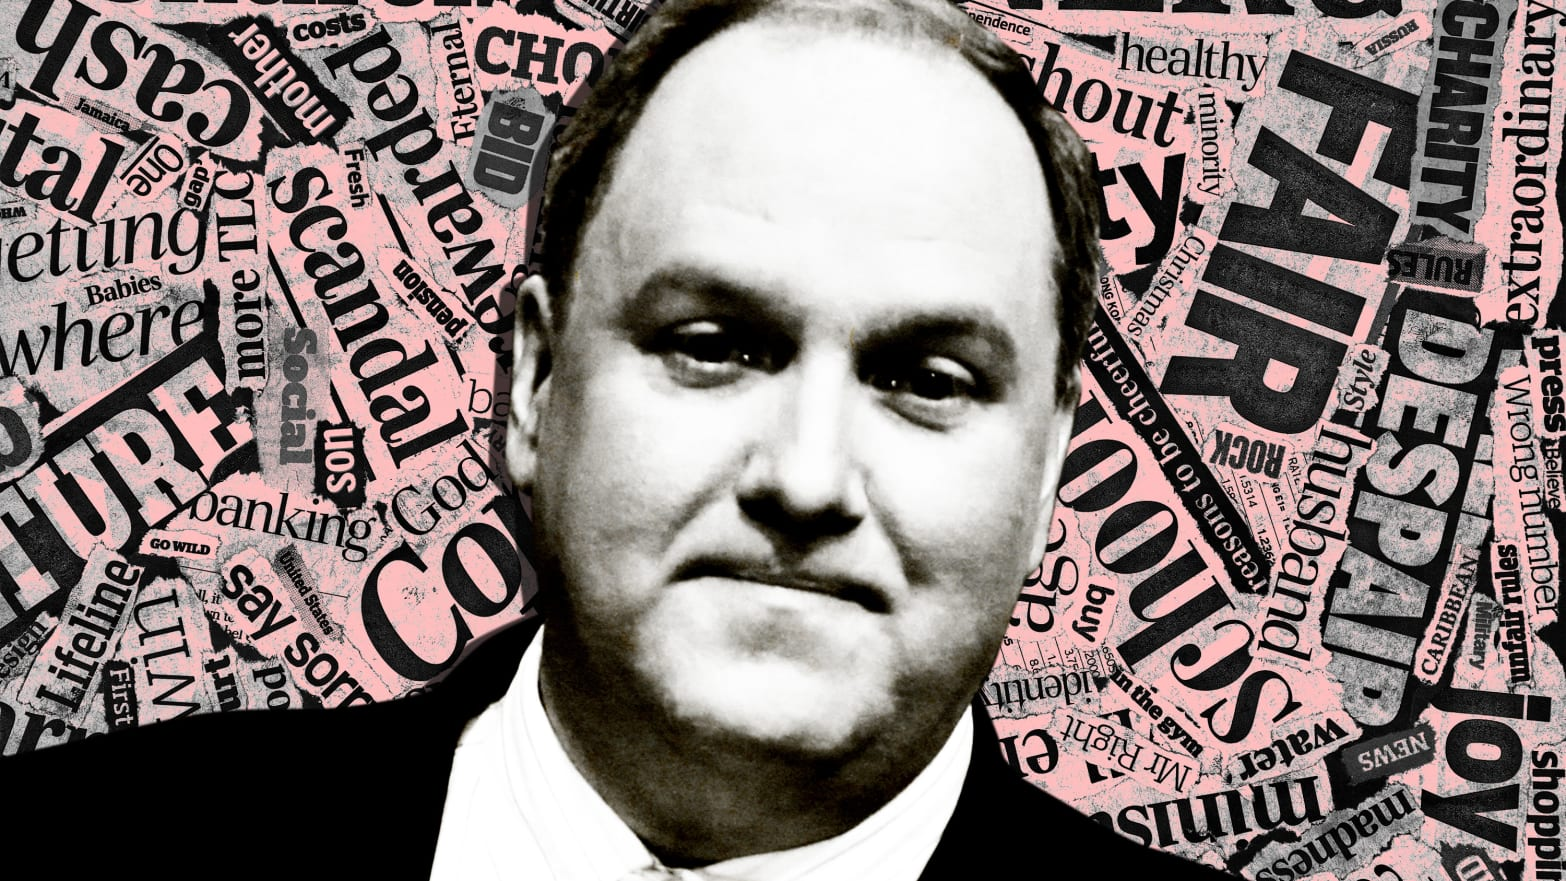 Water Finds Its Level as Fox News Hires Dictator-Loving, Deep-State Loathing John Solomon